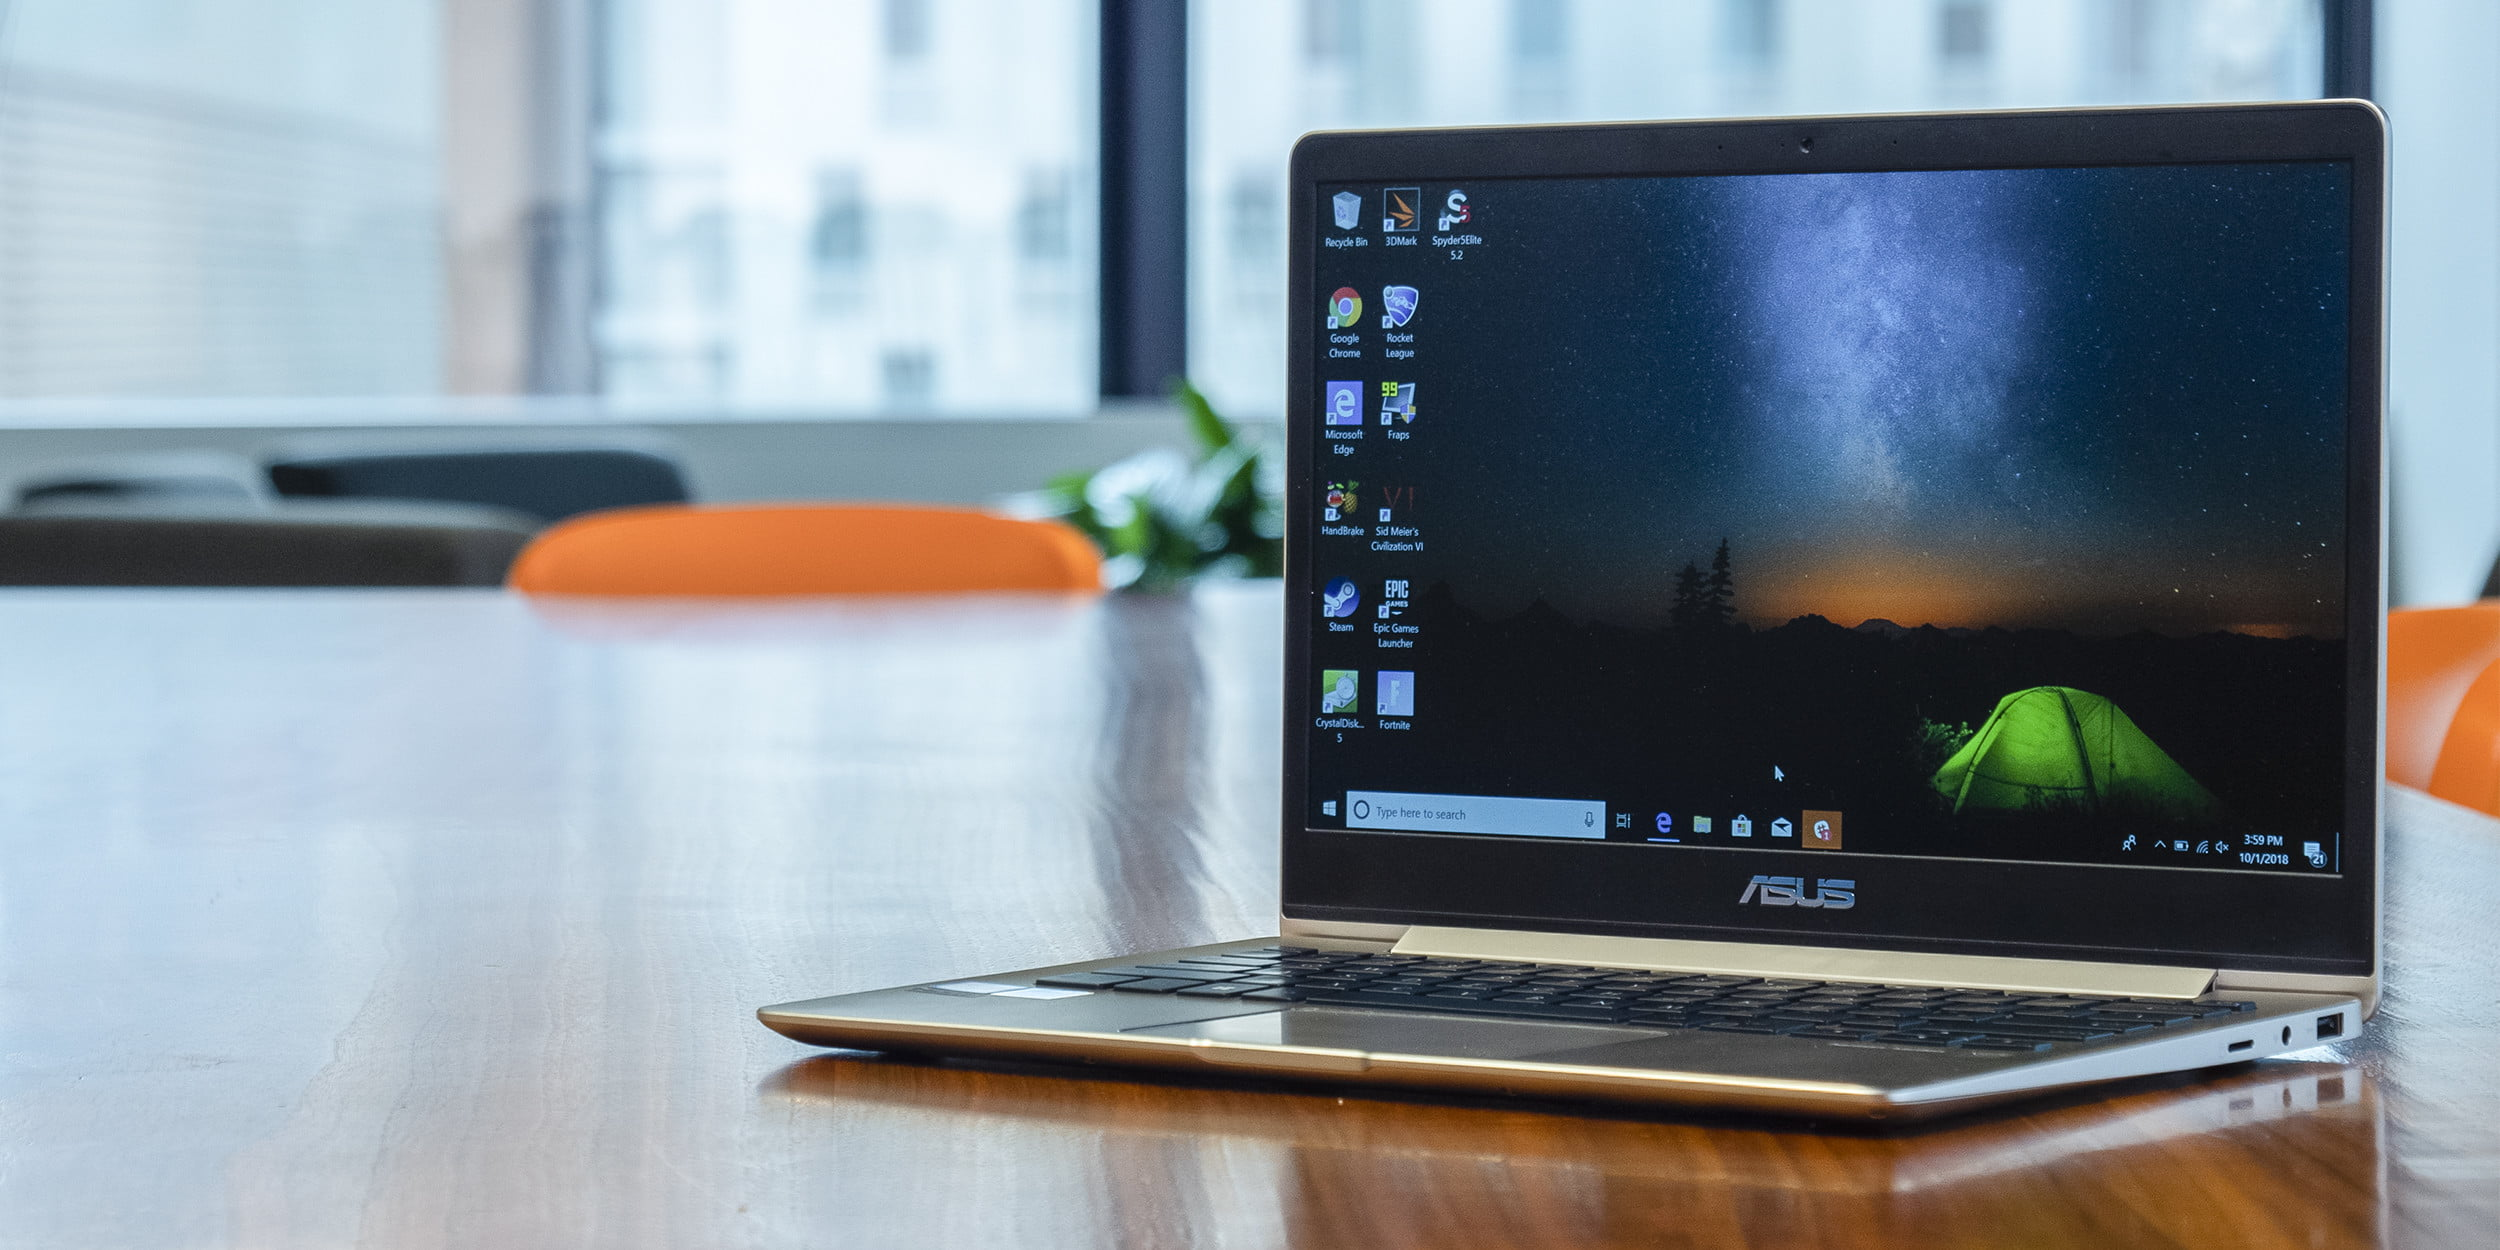 Amid a new fleet of budget laptops, the ZenBook 13 sails where others sink